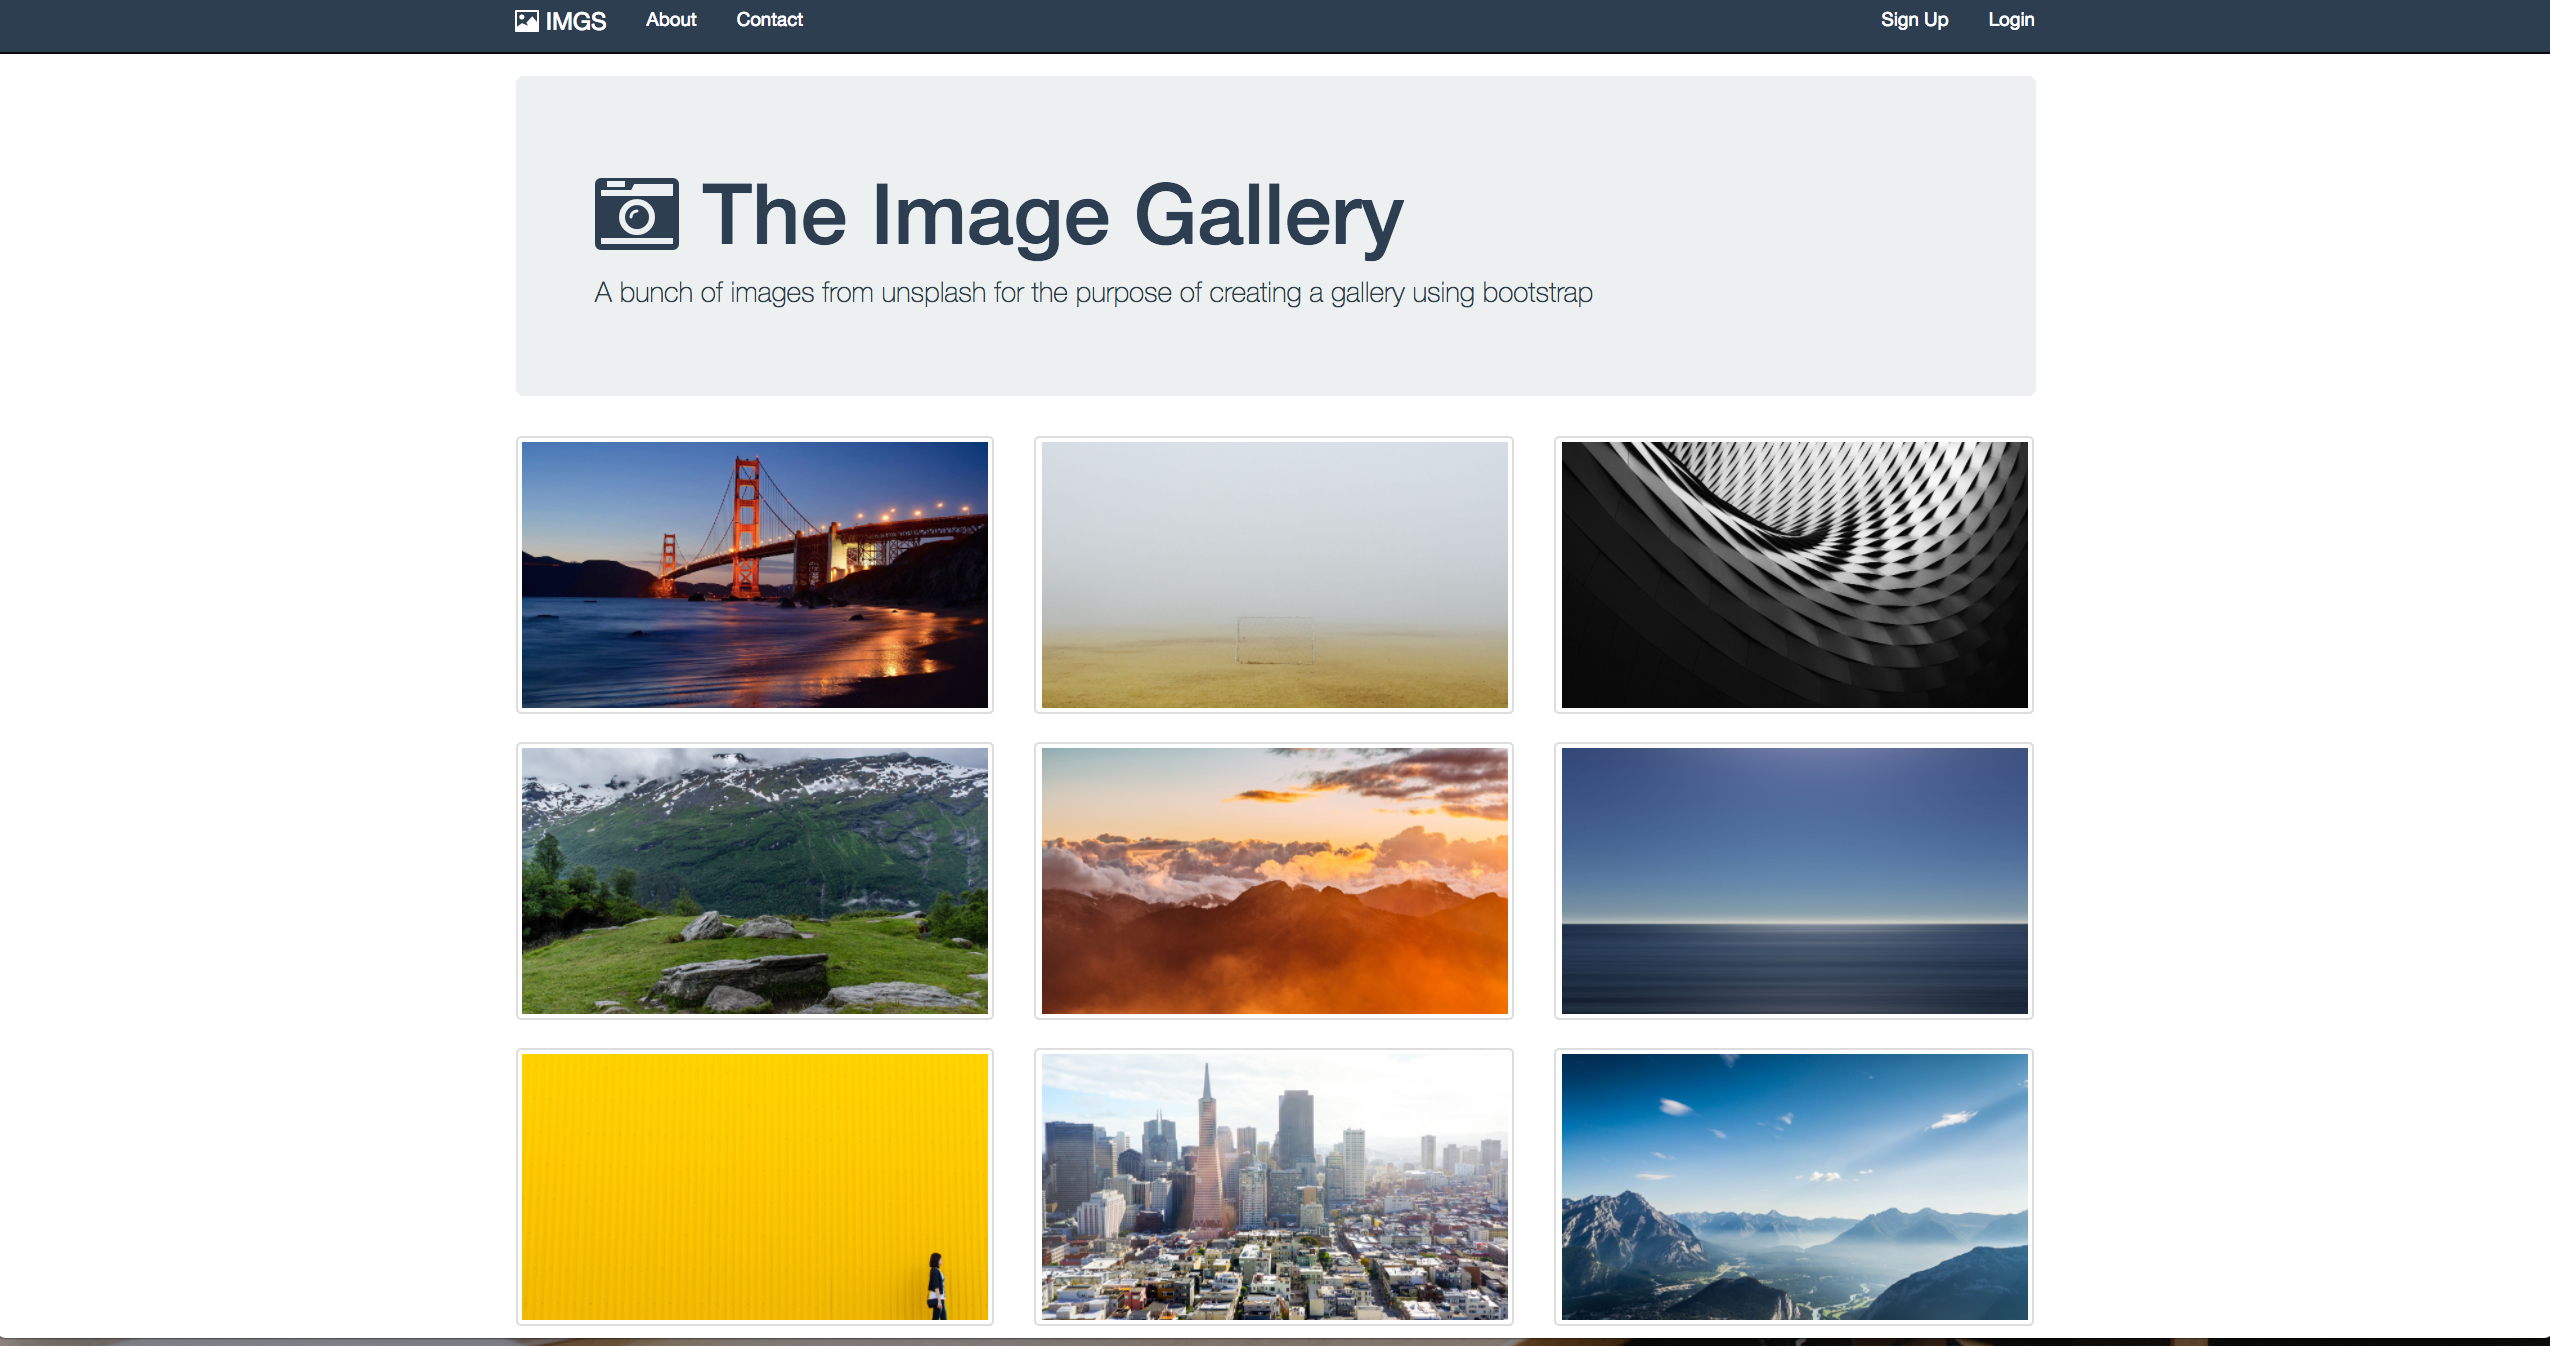 screen shot of an image gallery page